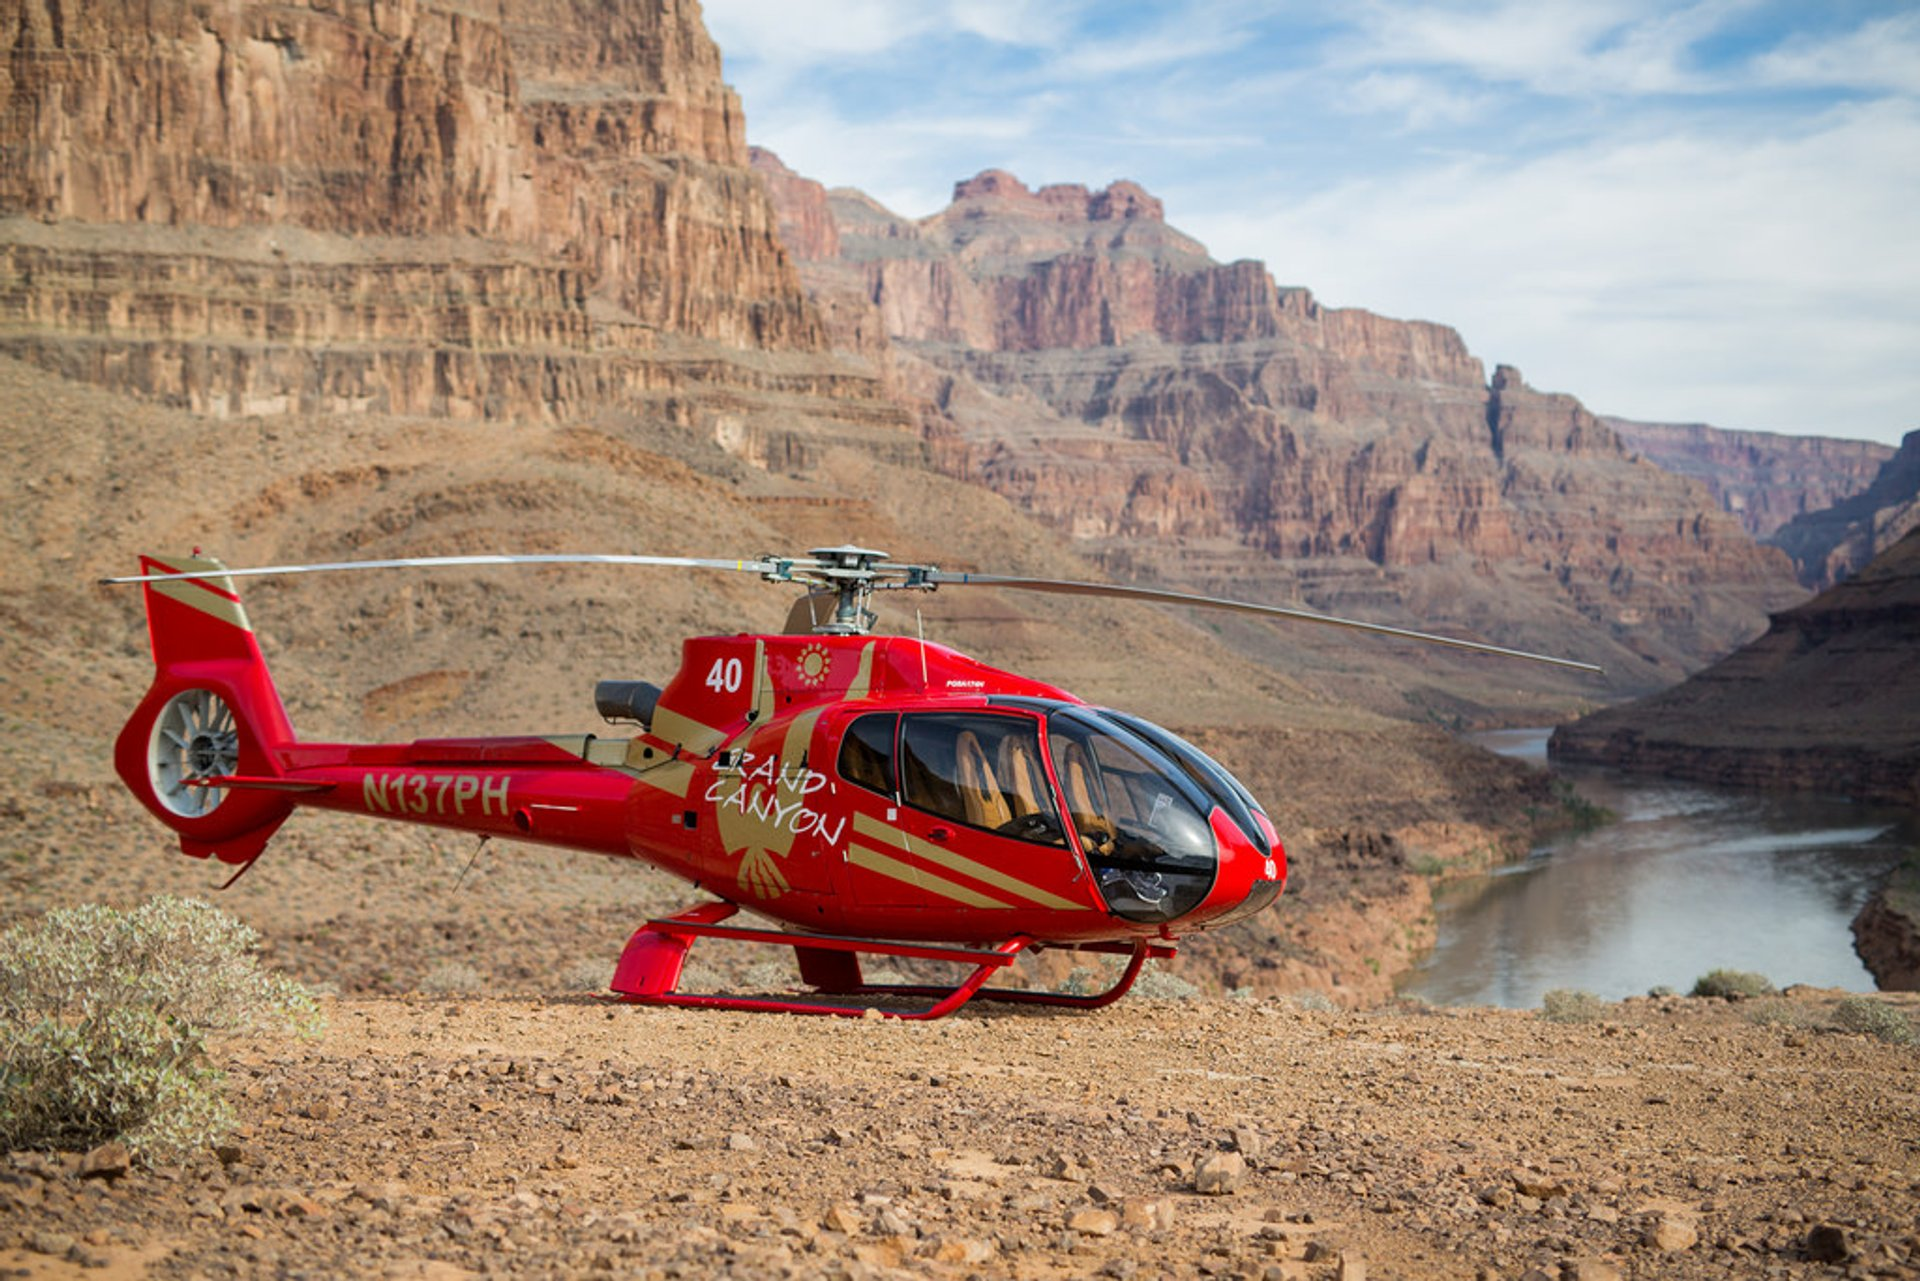 Helicopter Tours in Grand Canyon 2019 - Best Time